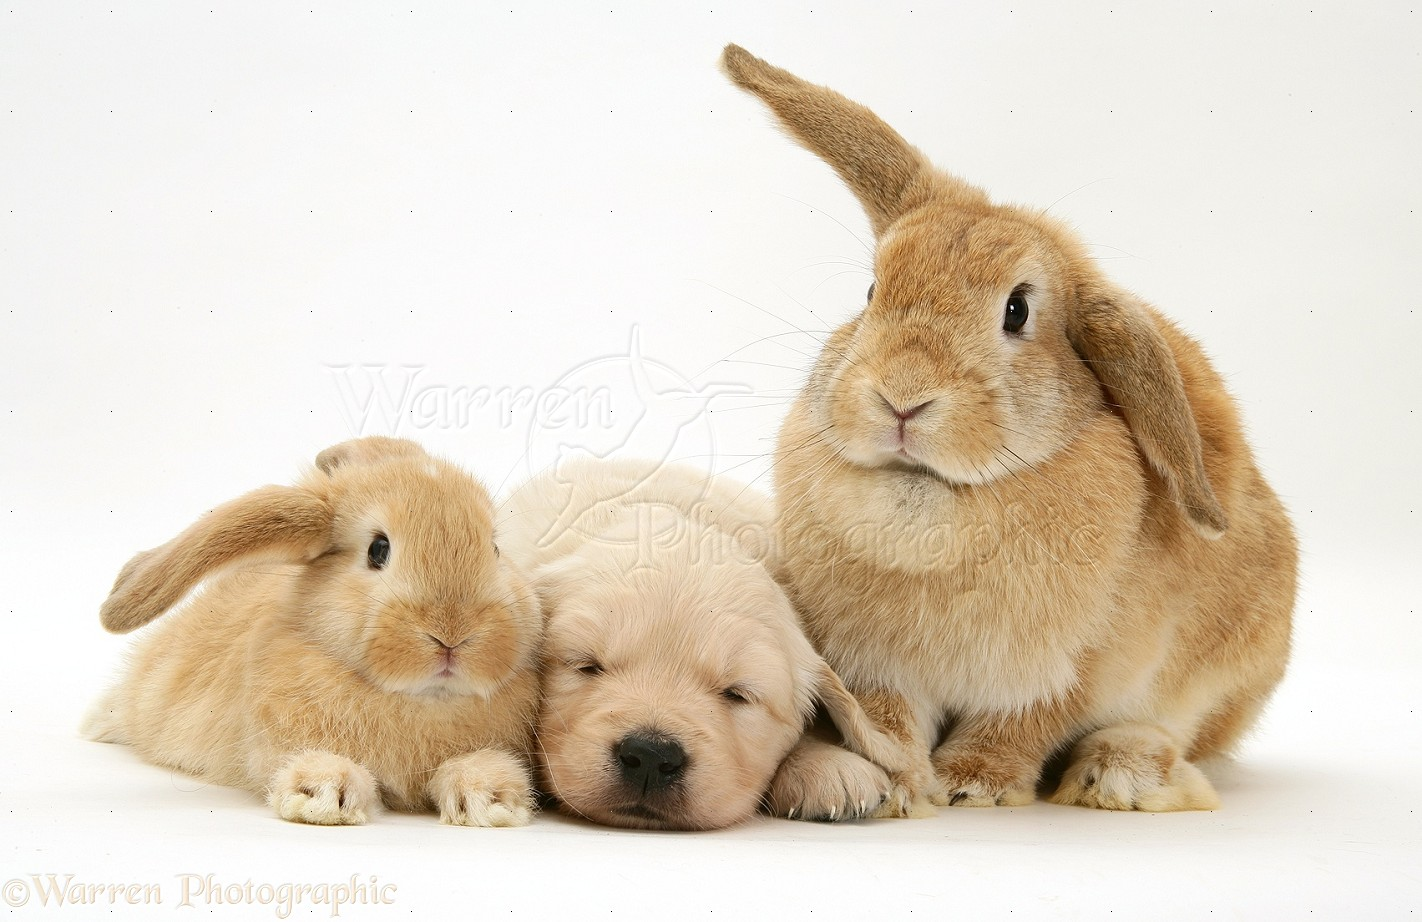 pets rabbits and golden retriever puppy photo wp10576. Black Bedroom Furniture Sets. Home Design Ideas